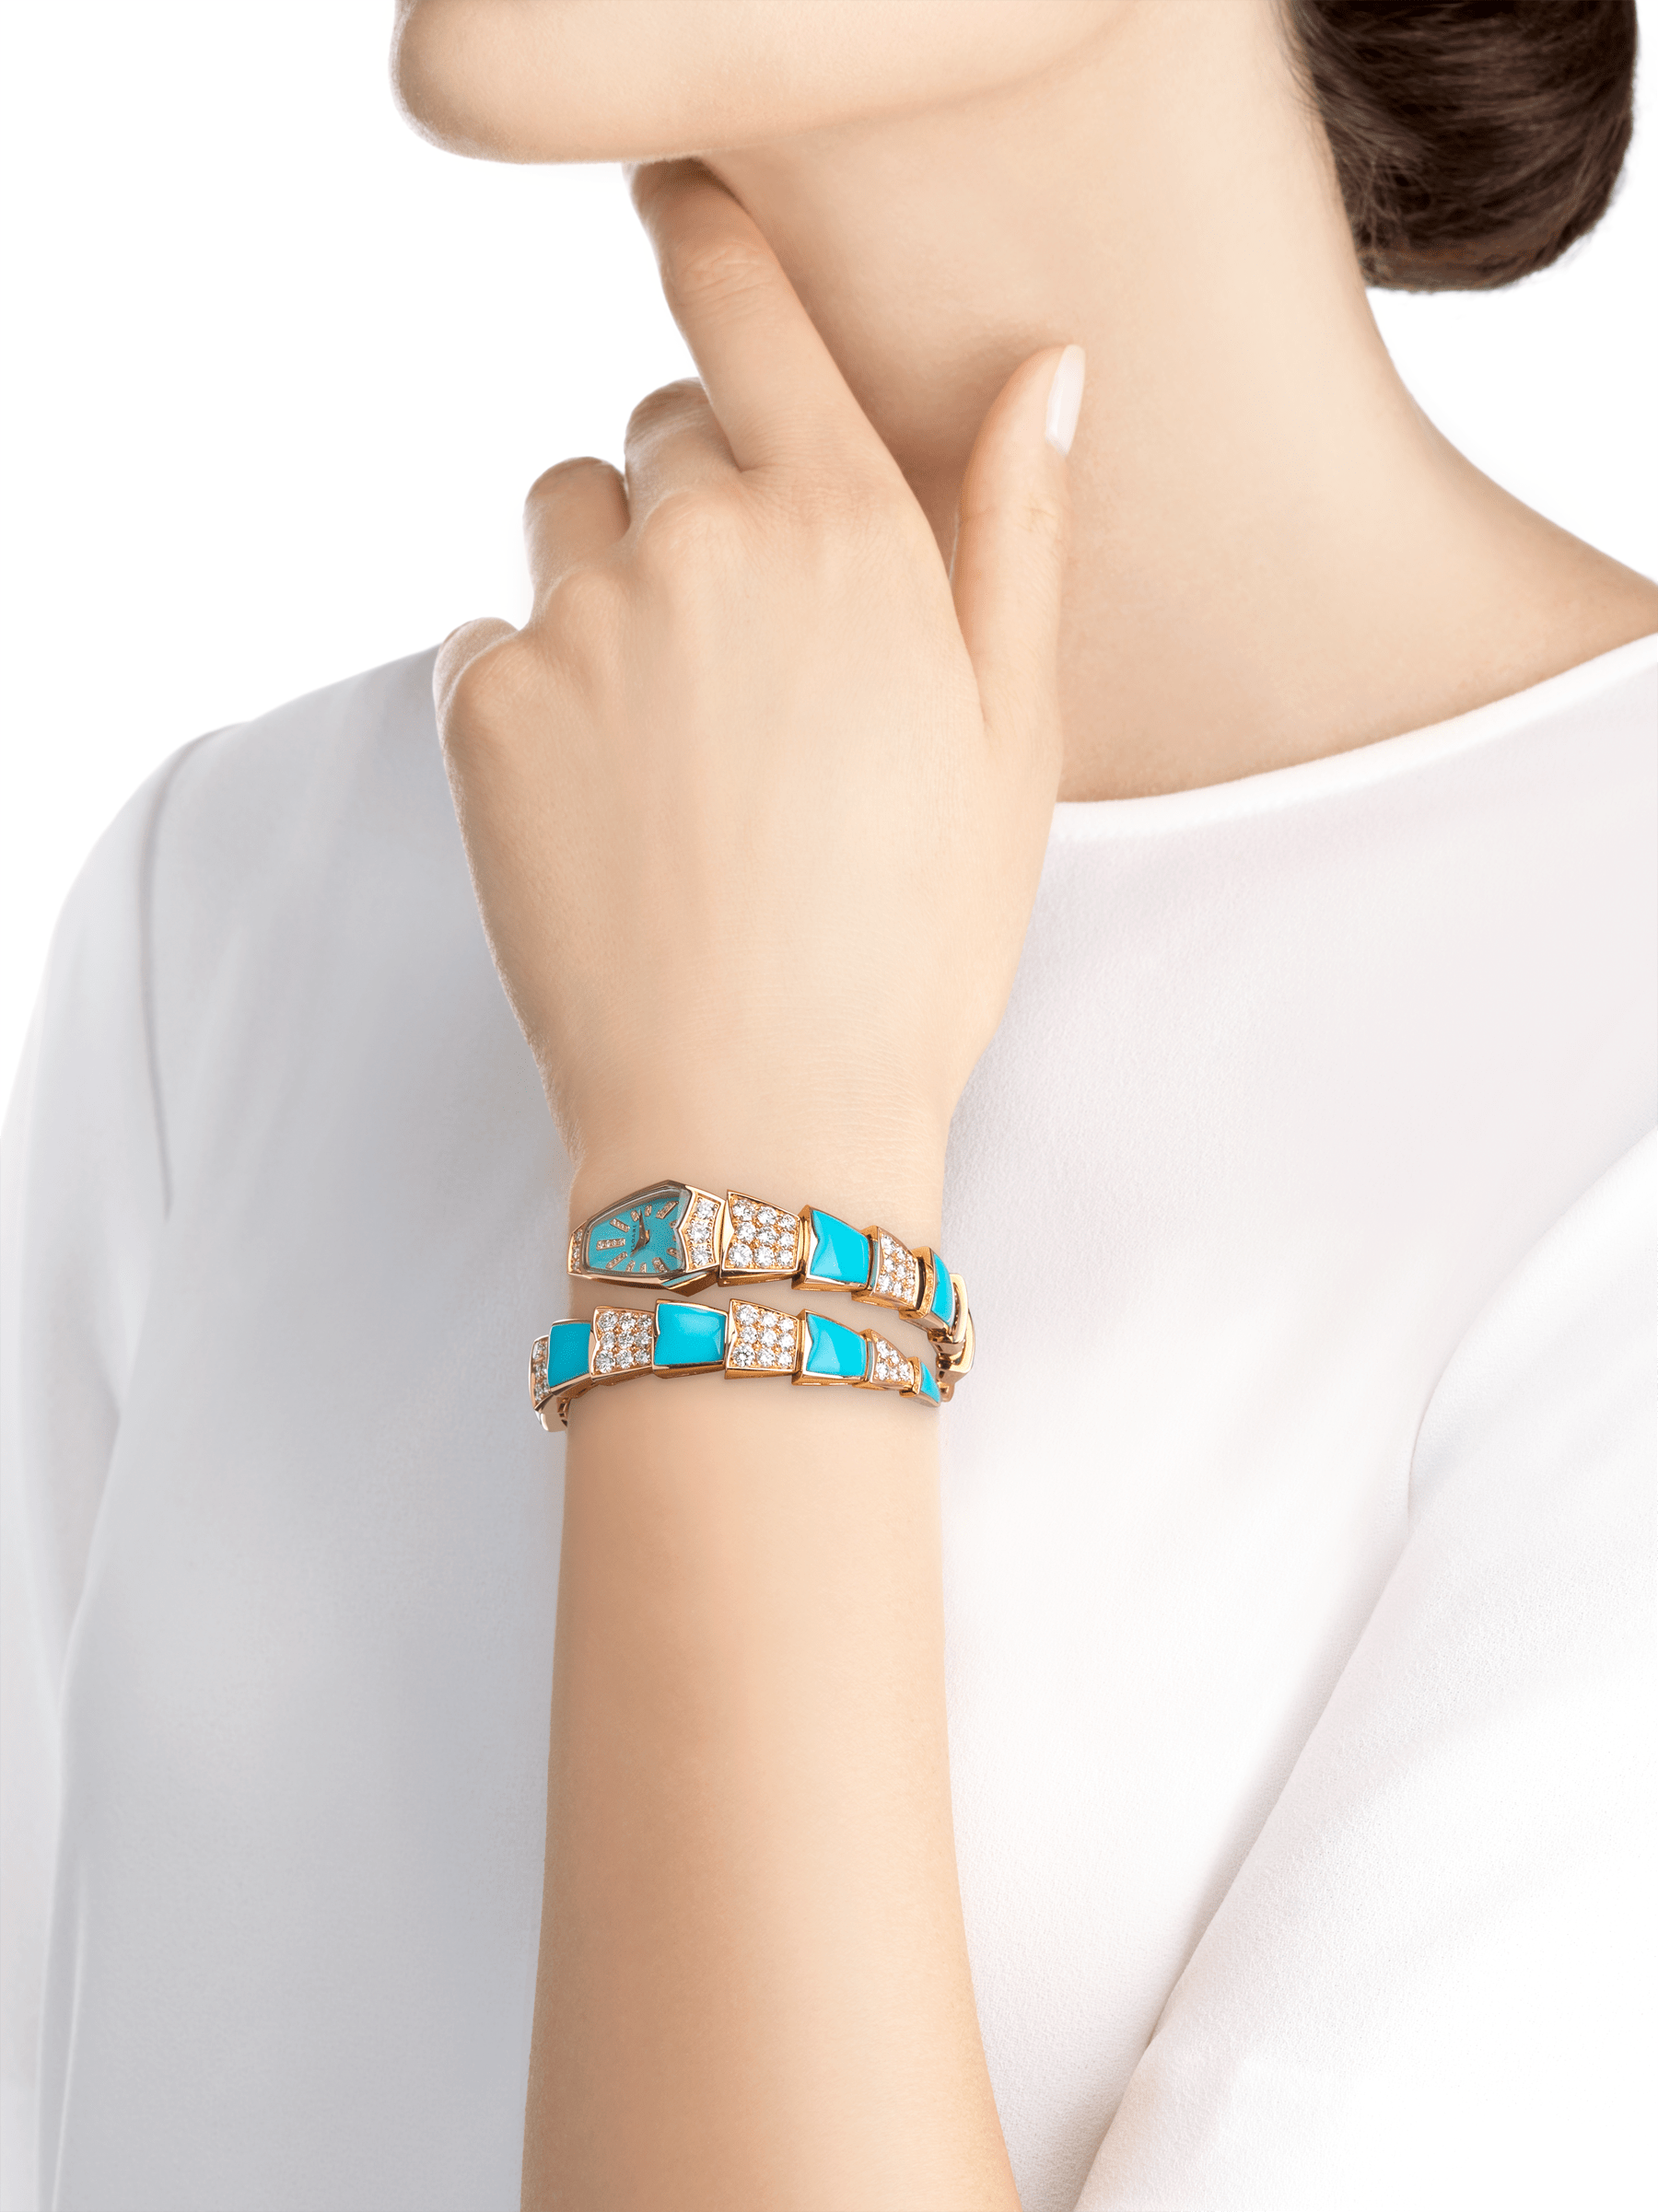 Serpenti Jewellery Watch with 18 kt rose gold case set with brilliant cut diamonds, turquoise lacquered dial, diamond indexes, 18 kt rose gold single spiral bracelet set with brilliant cut diamonds and turquoise elements. 102786 image 3